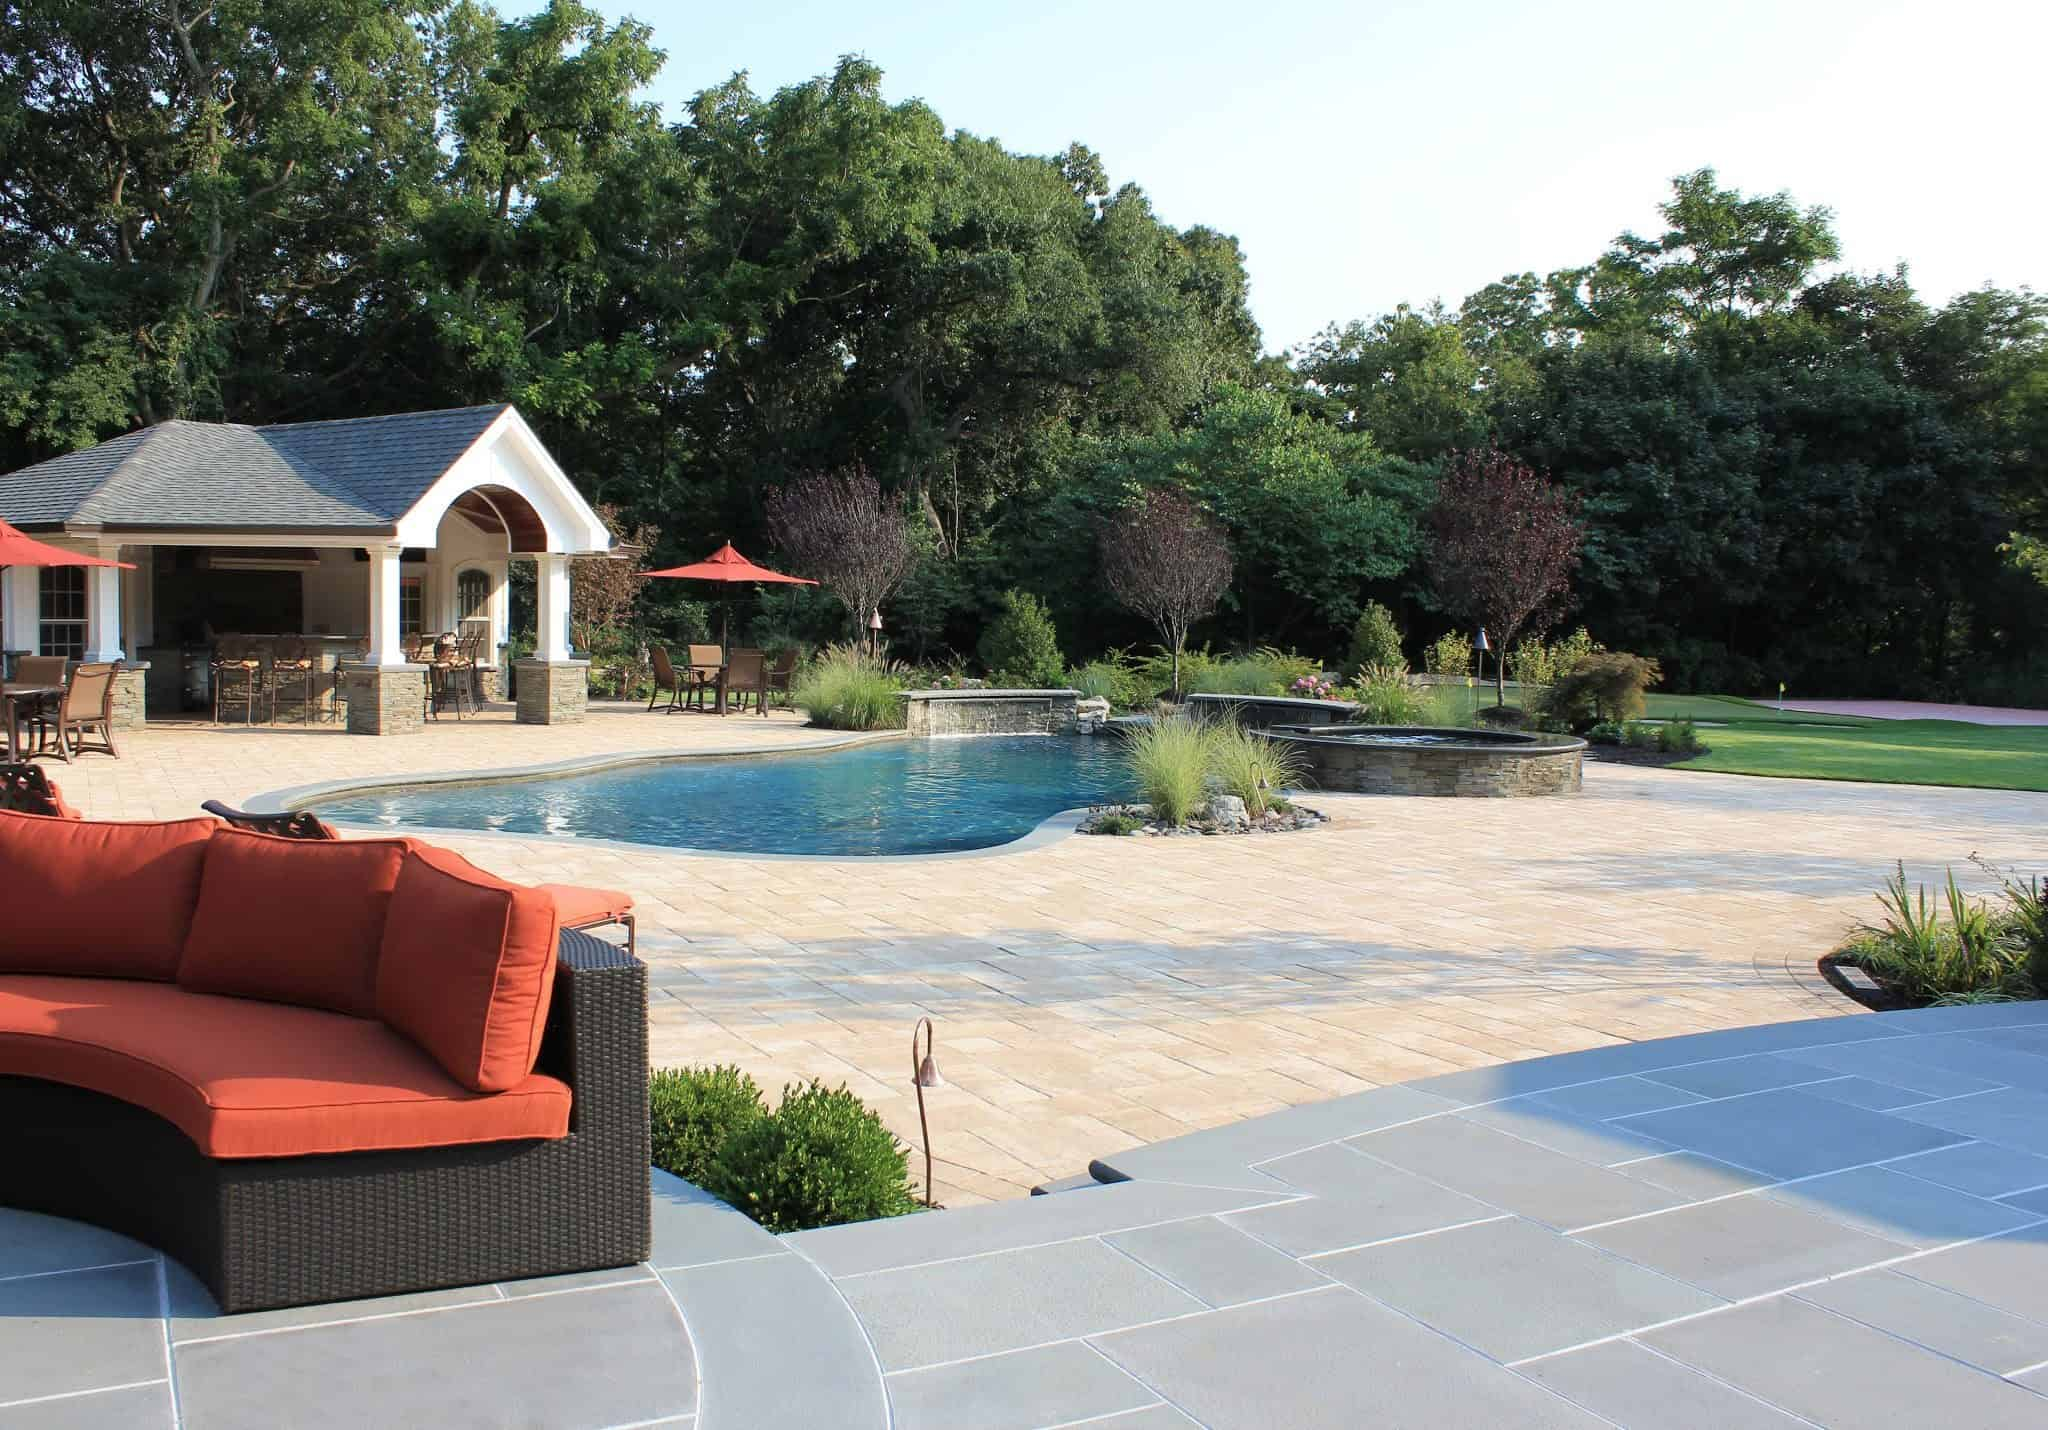 Paver Patio - Nicolock Pool Patio - Travertina - Random Pattern - Old Westbury, Long Island NY